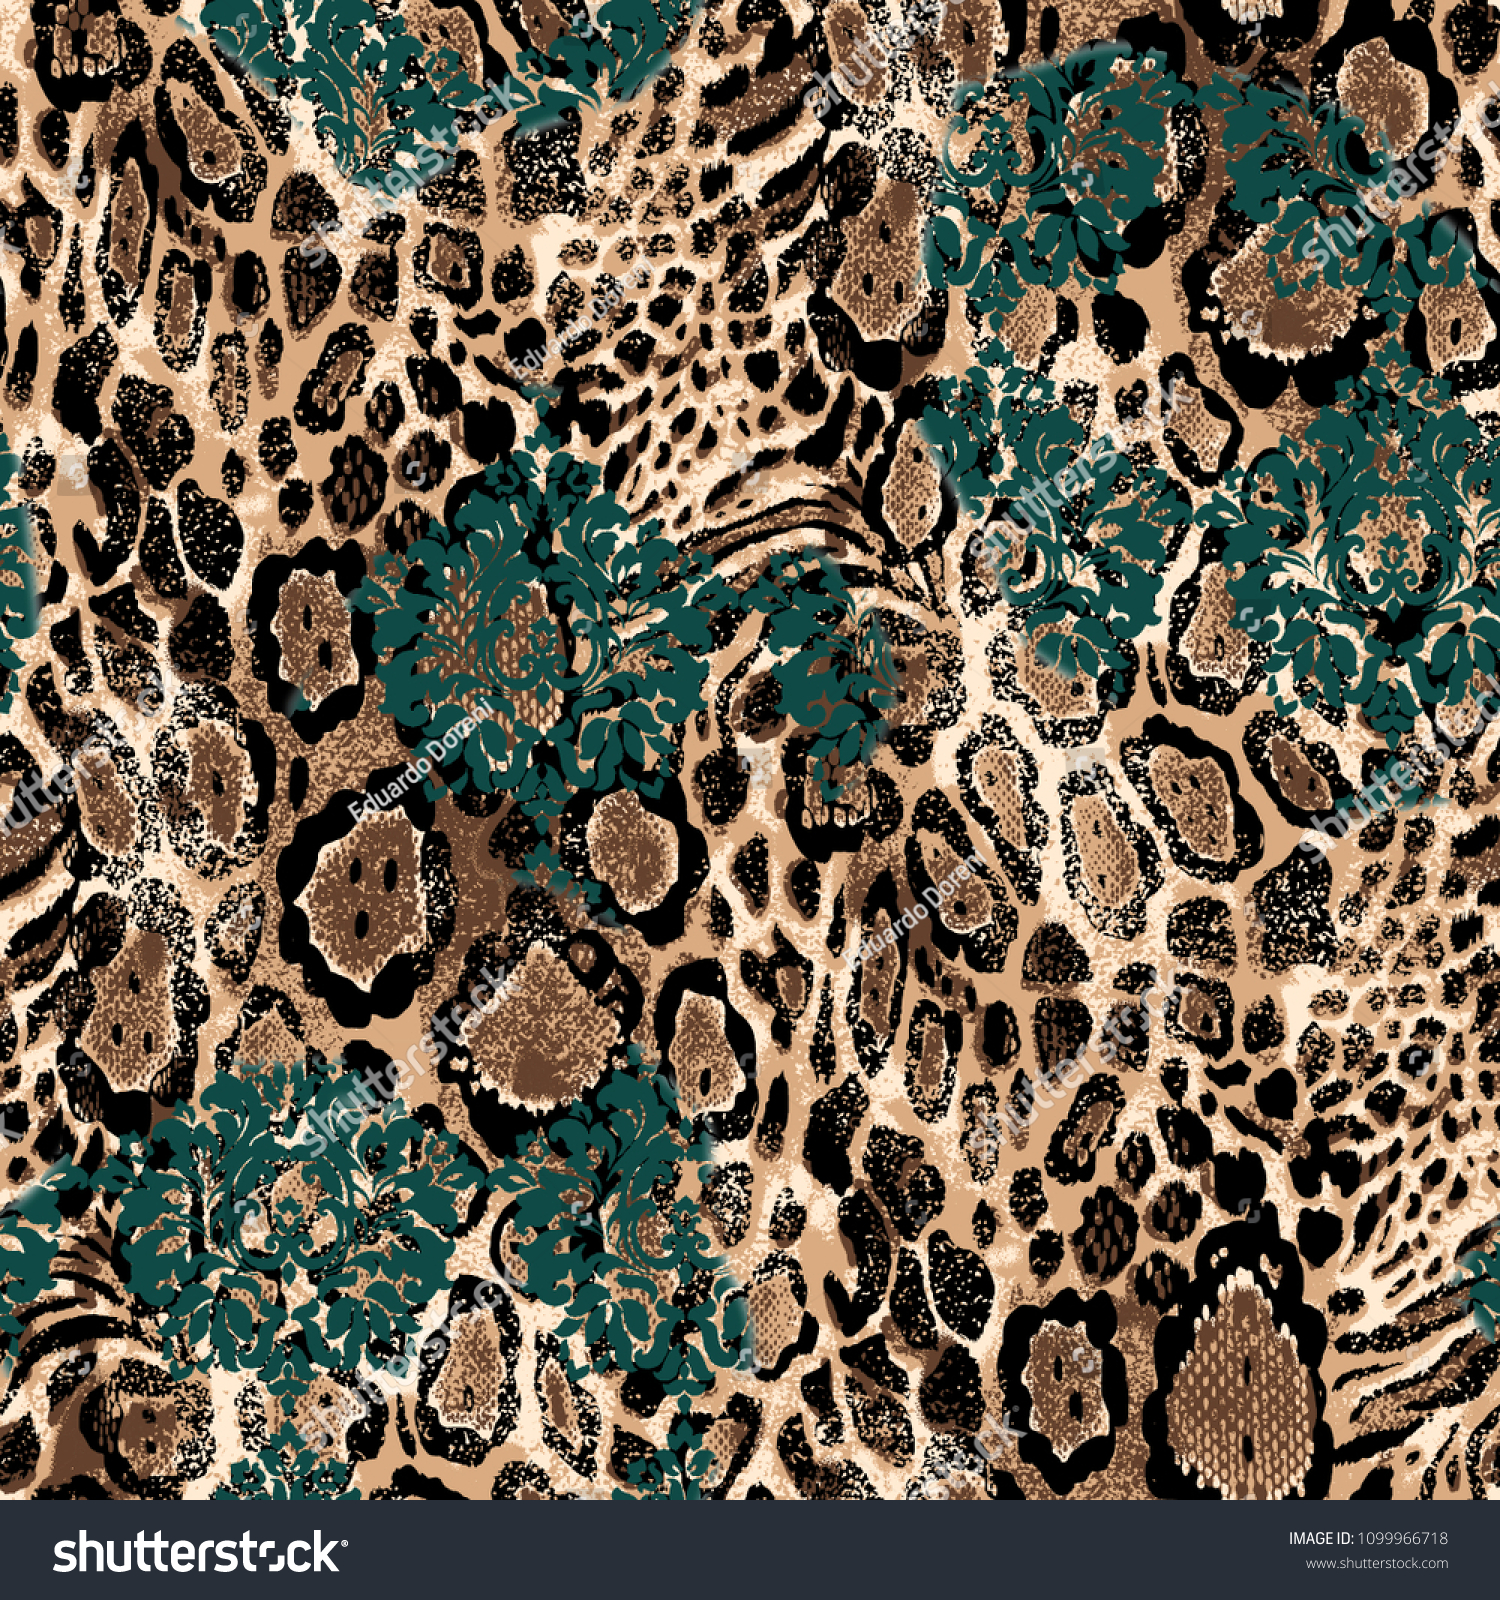 87fd5ecddc Seamless Leopard and Baroque Pattern for Textile Print for printed fabric  design for Womenswear